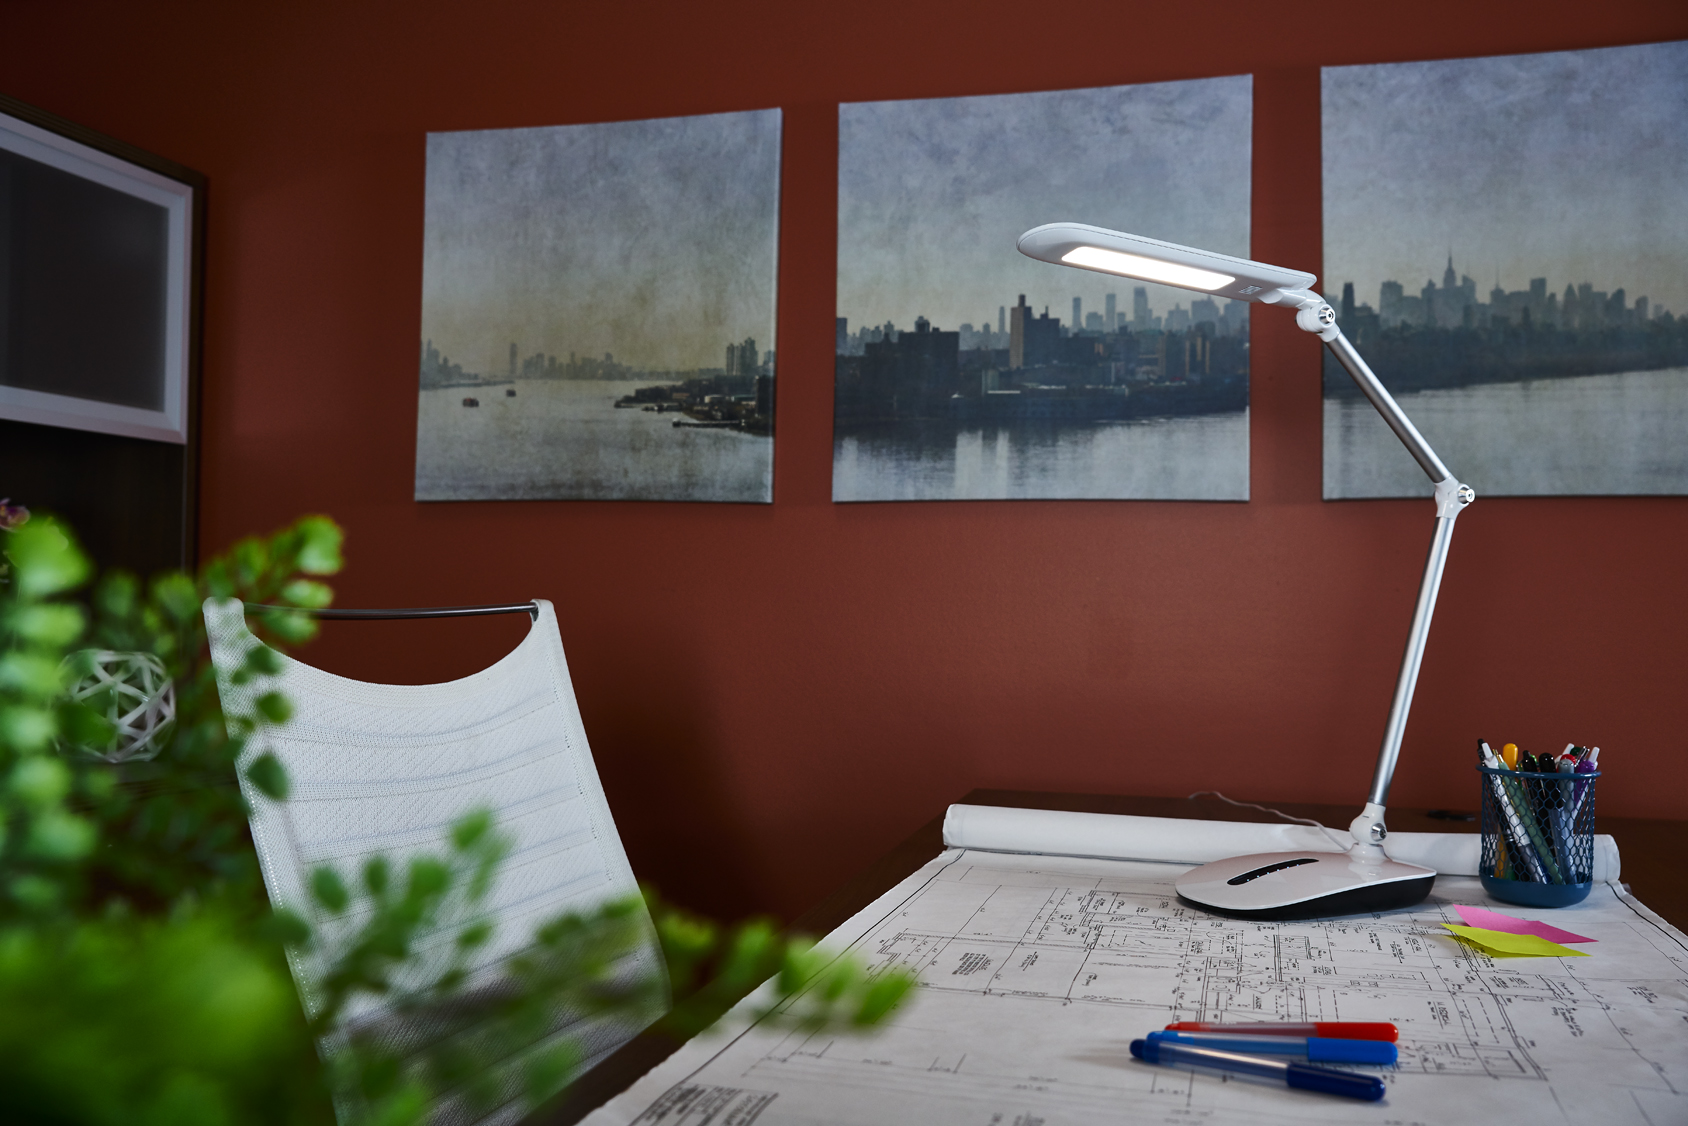 ottlite-stretch-crane-lamp-office2